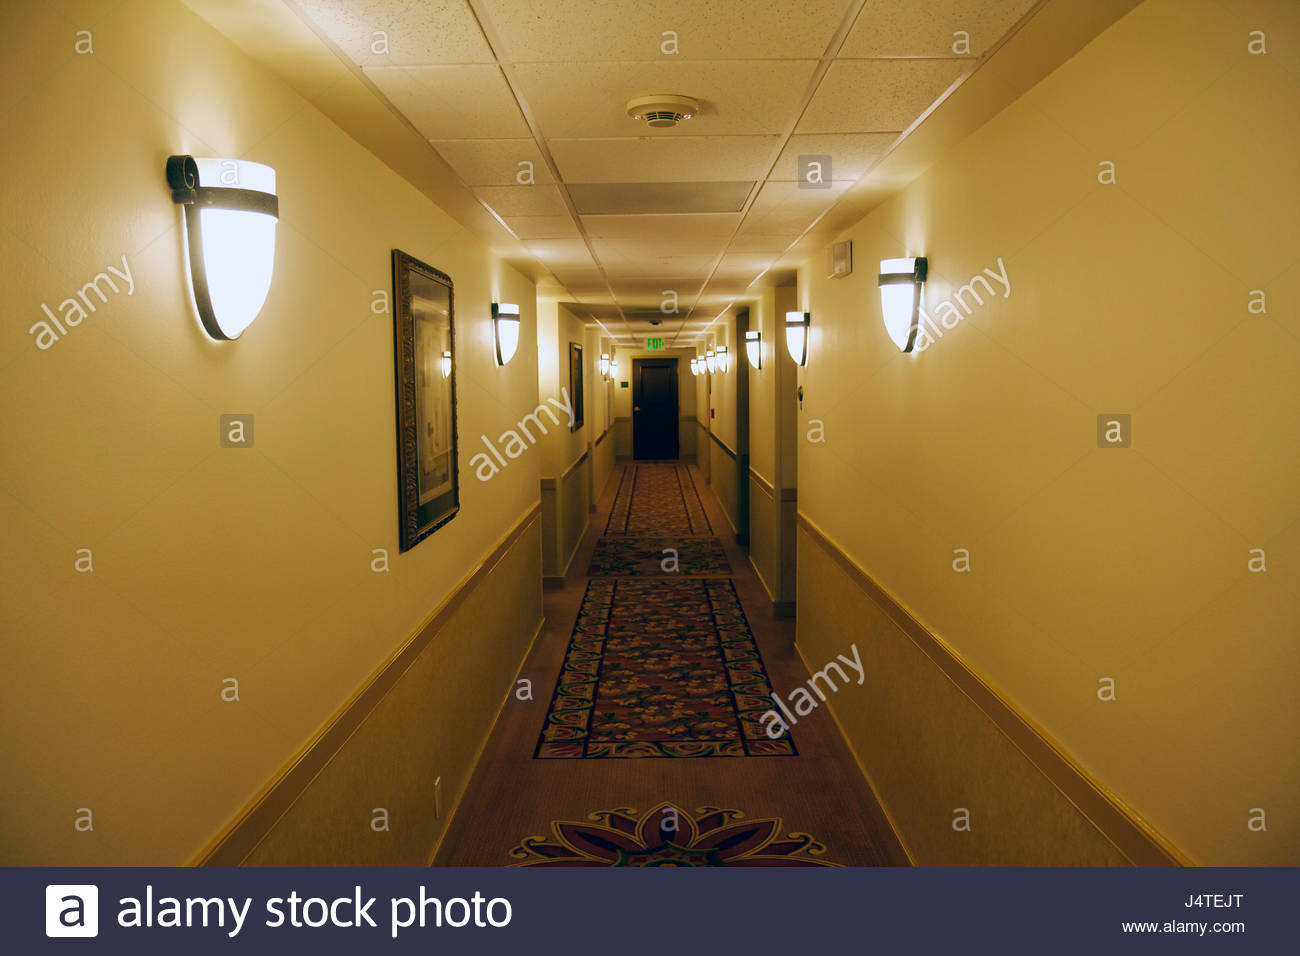 Naples Florida Doubletree Guest Suites Motel Hotel Hallway Wall